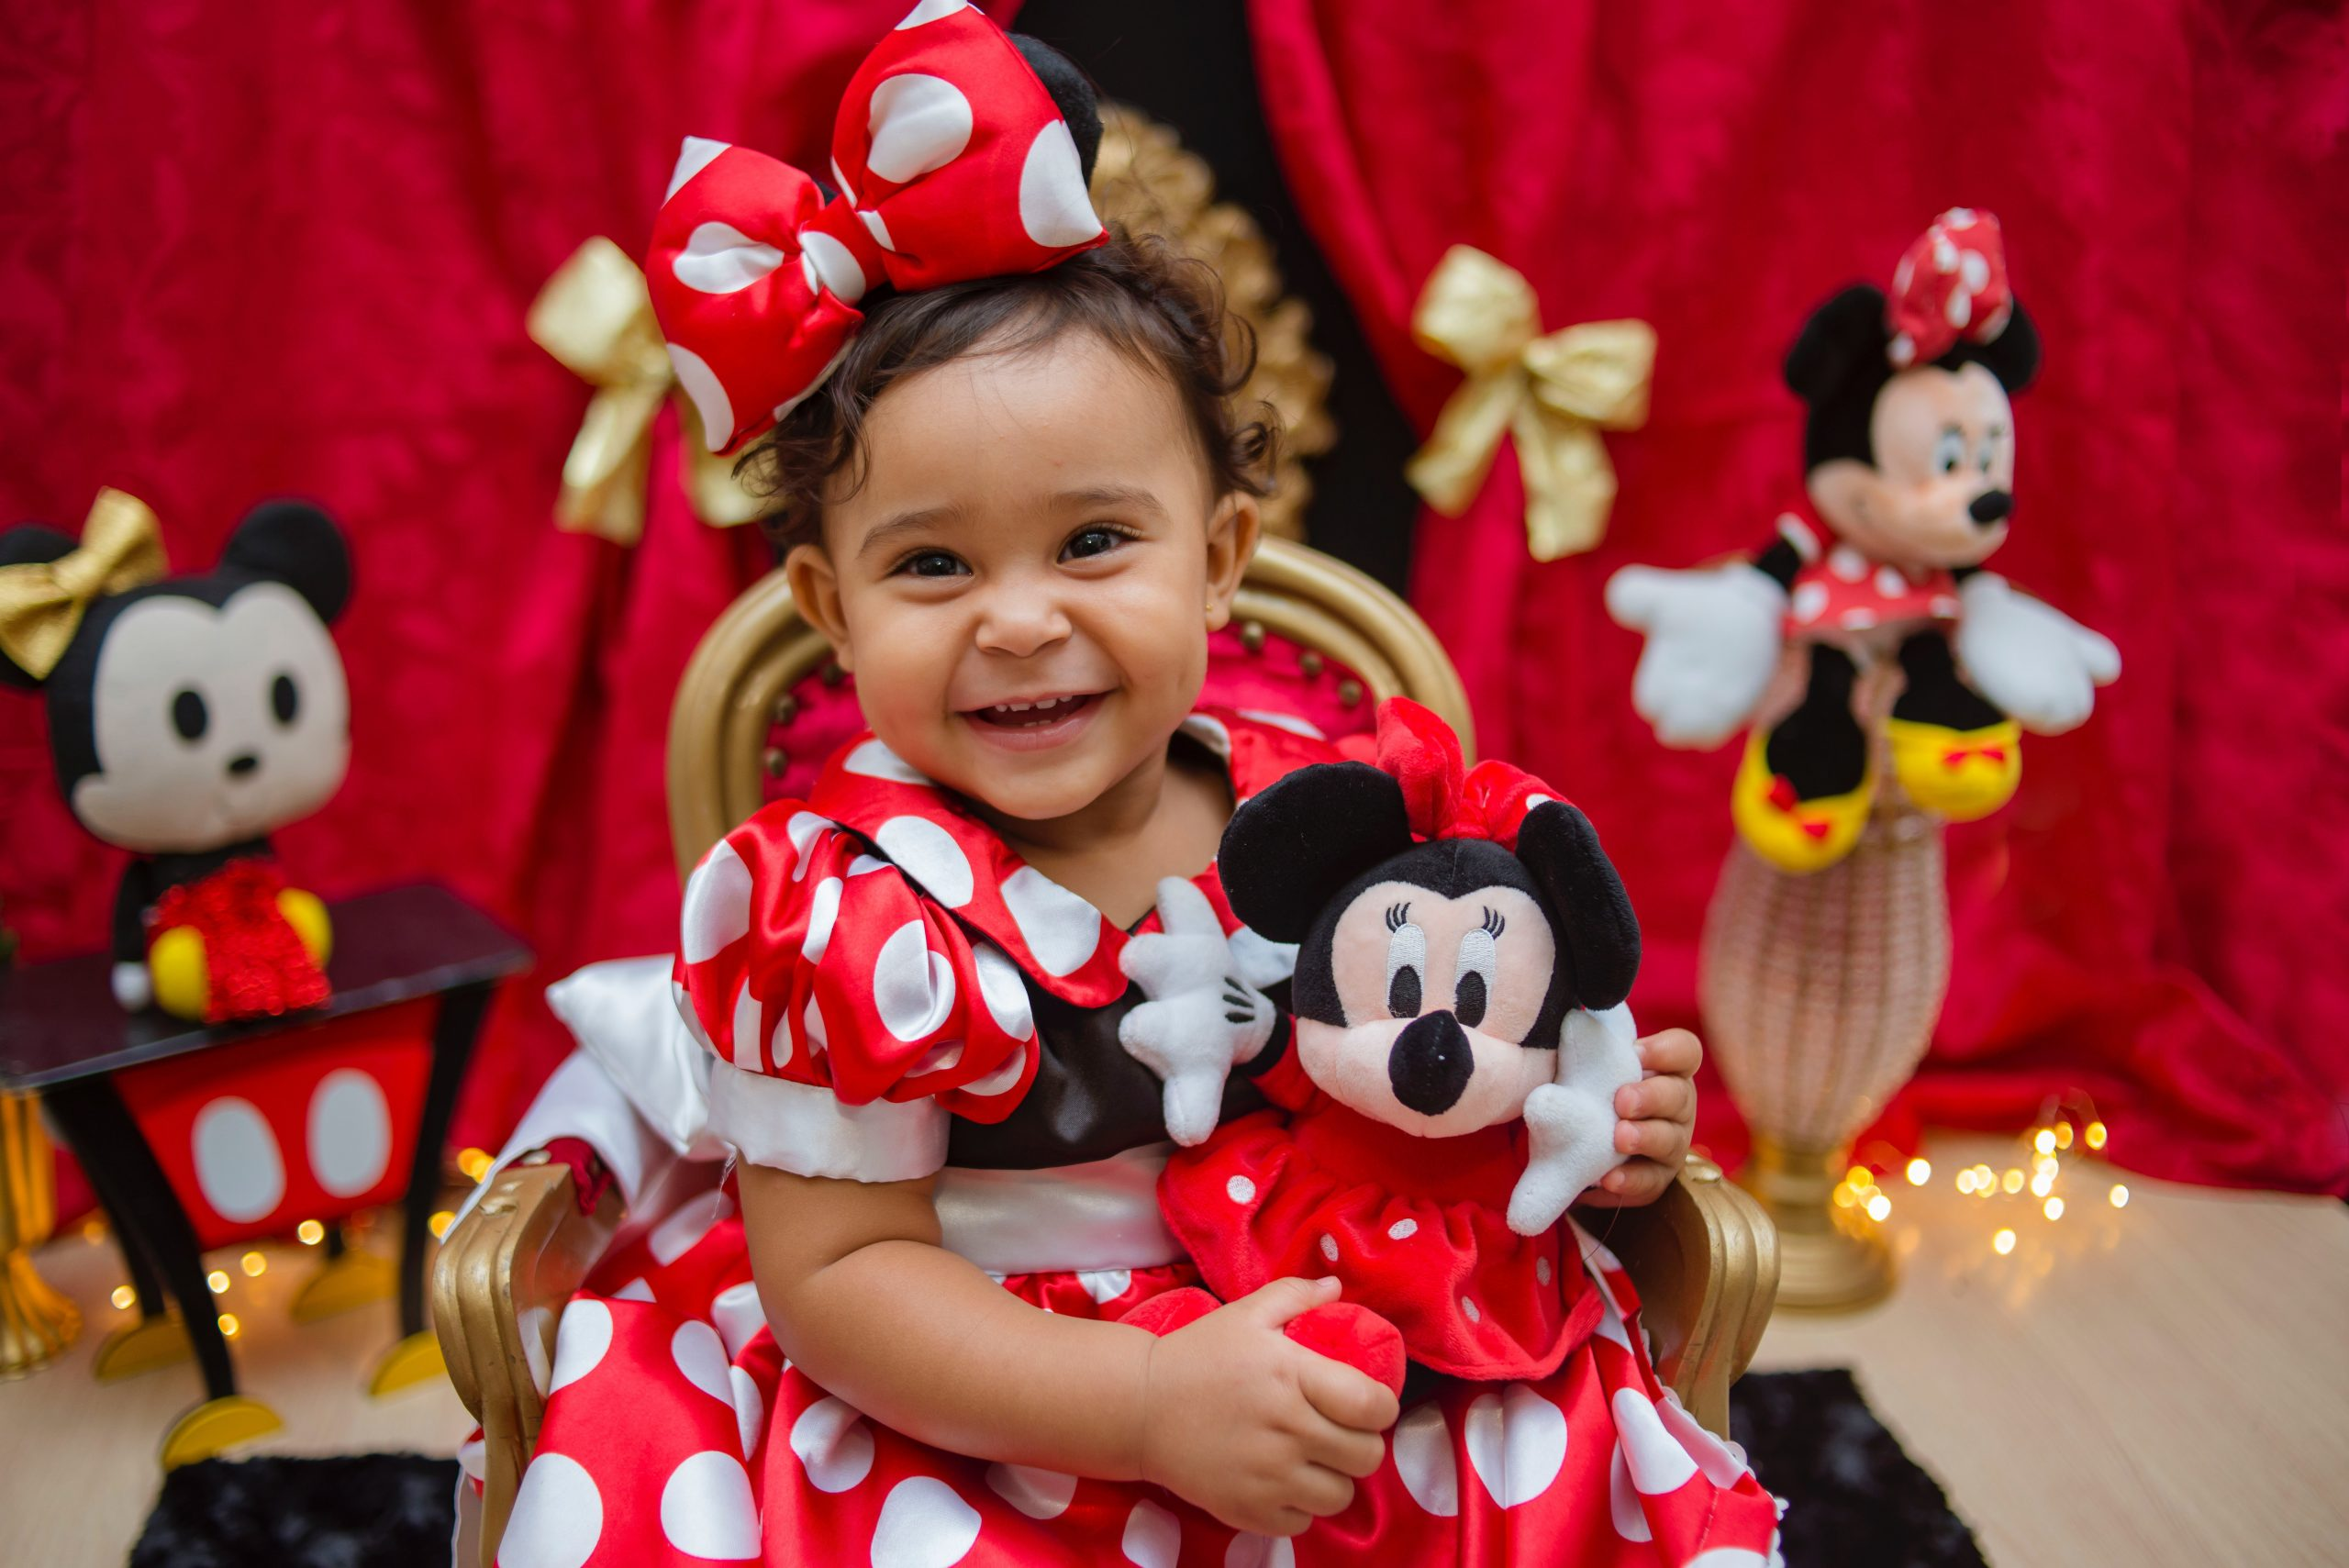 Girl in Red and White Polka Dot Dress Holding Mickey Mouse Plush Toy